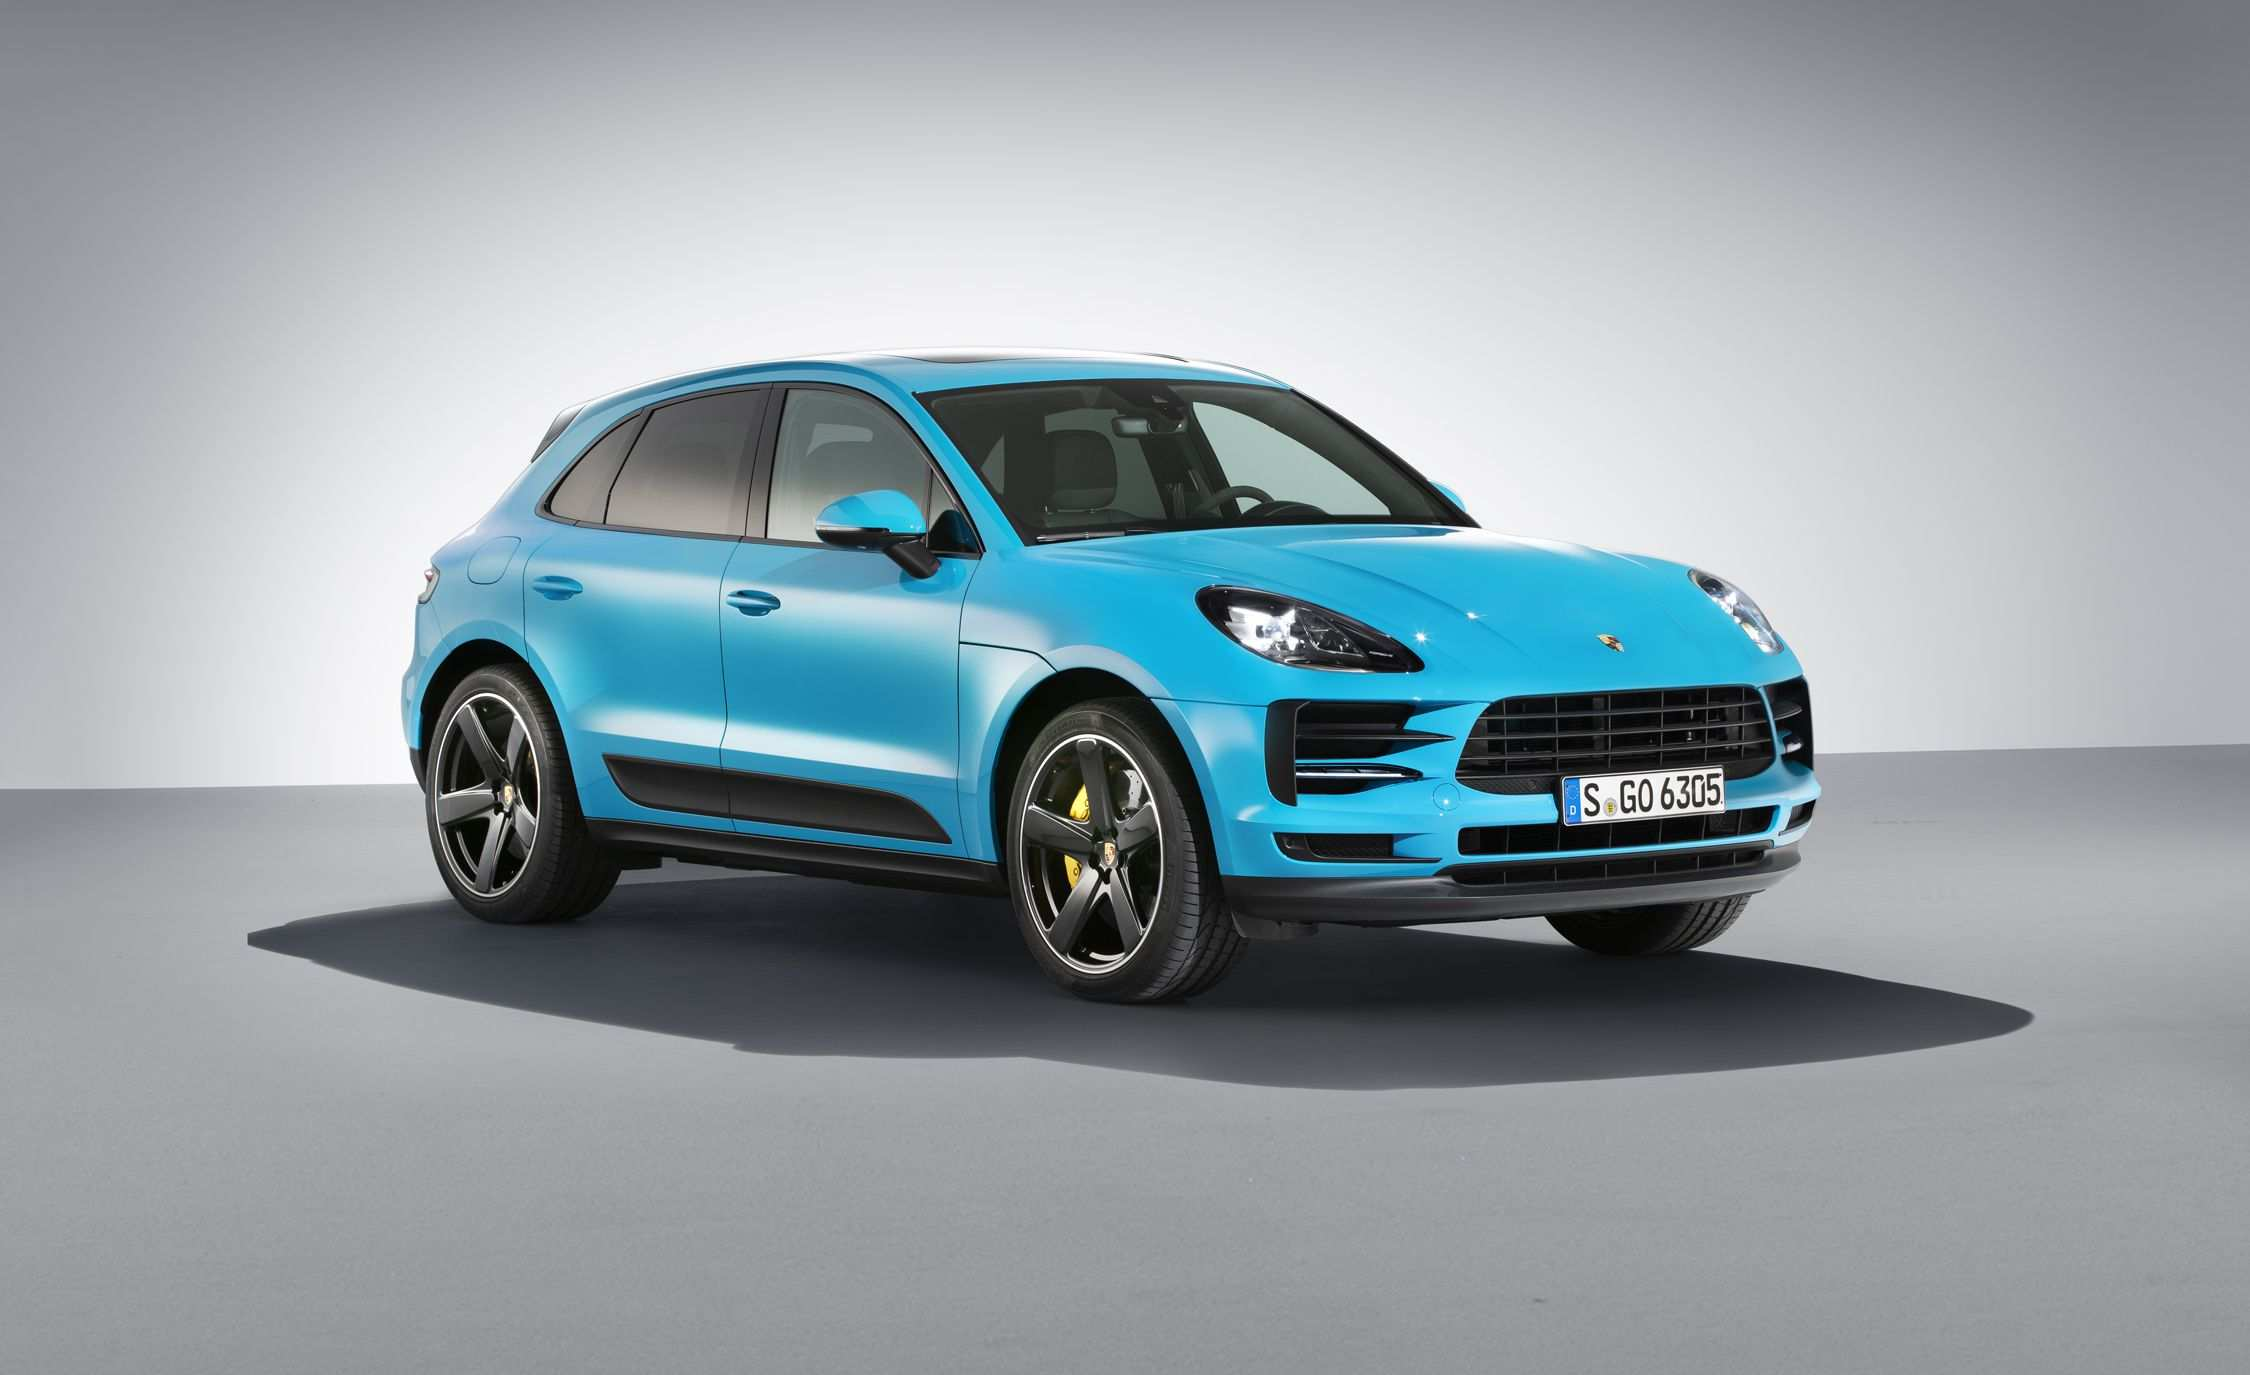 32 New 2019 Porsche Macan Release Date Exterior and Interior for 2019 Porsche Macan Release Date